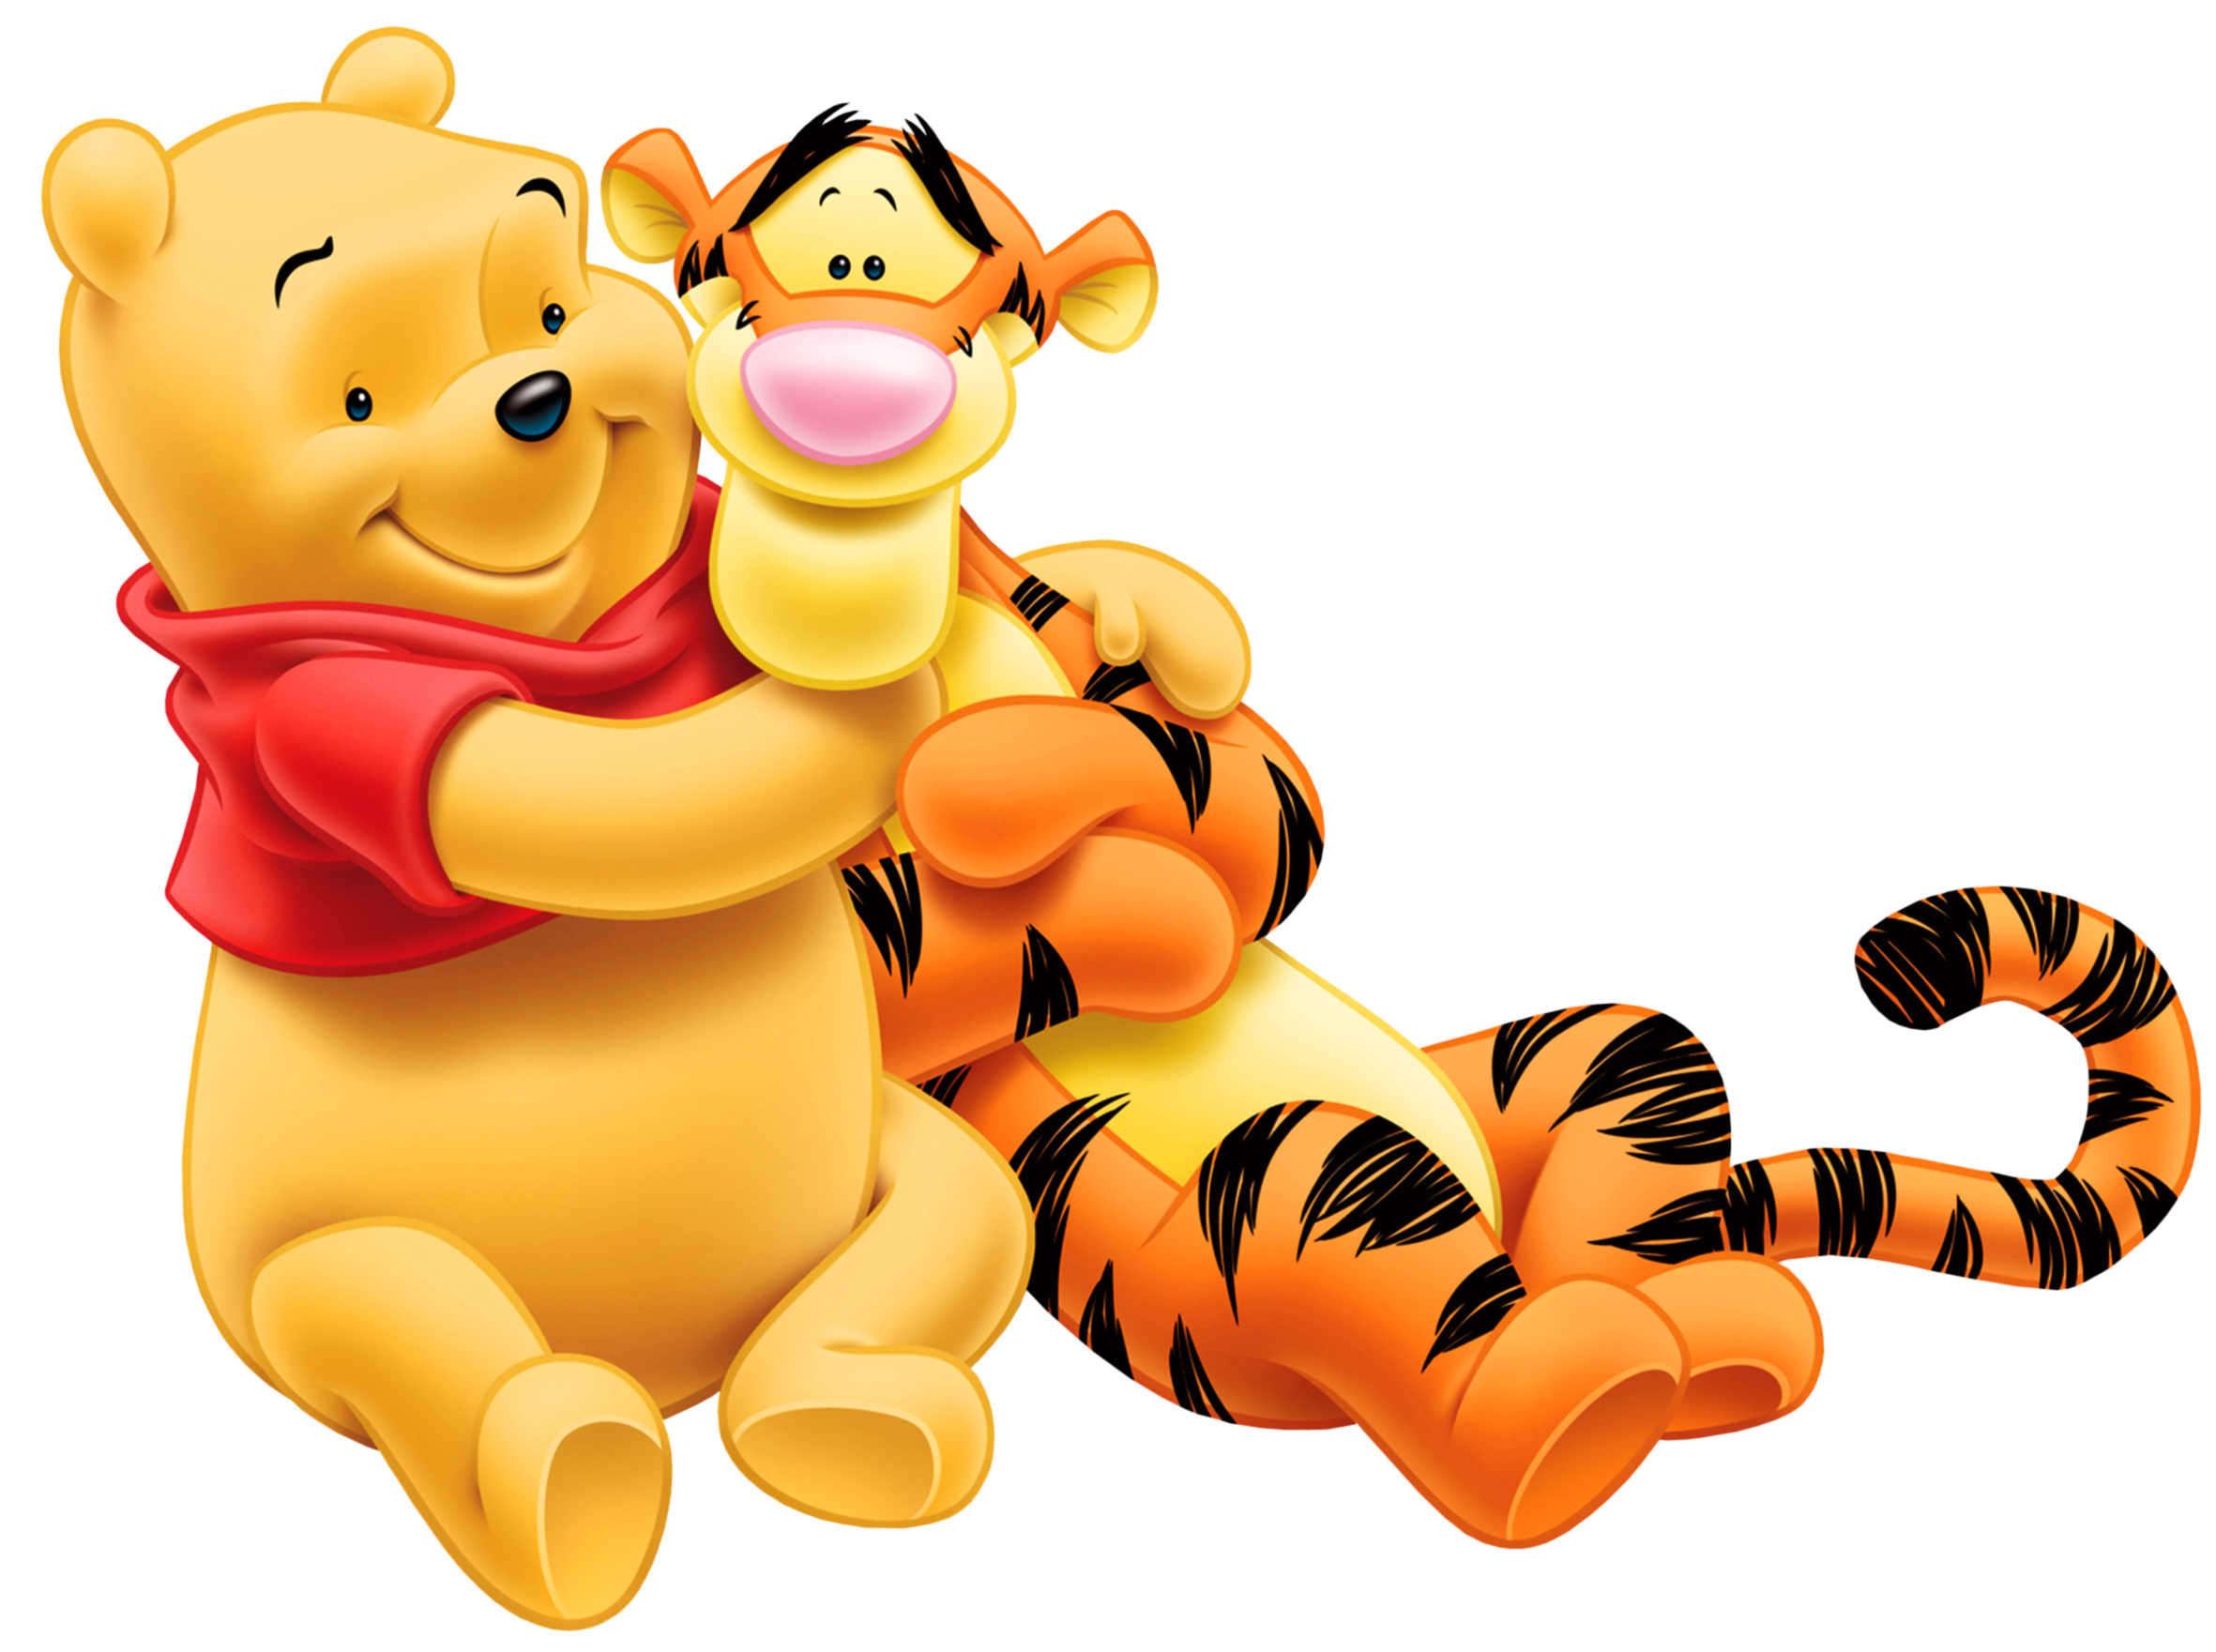 Transparent Tigger and Winnie the Pooh PNG Cartoon.